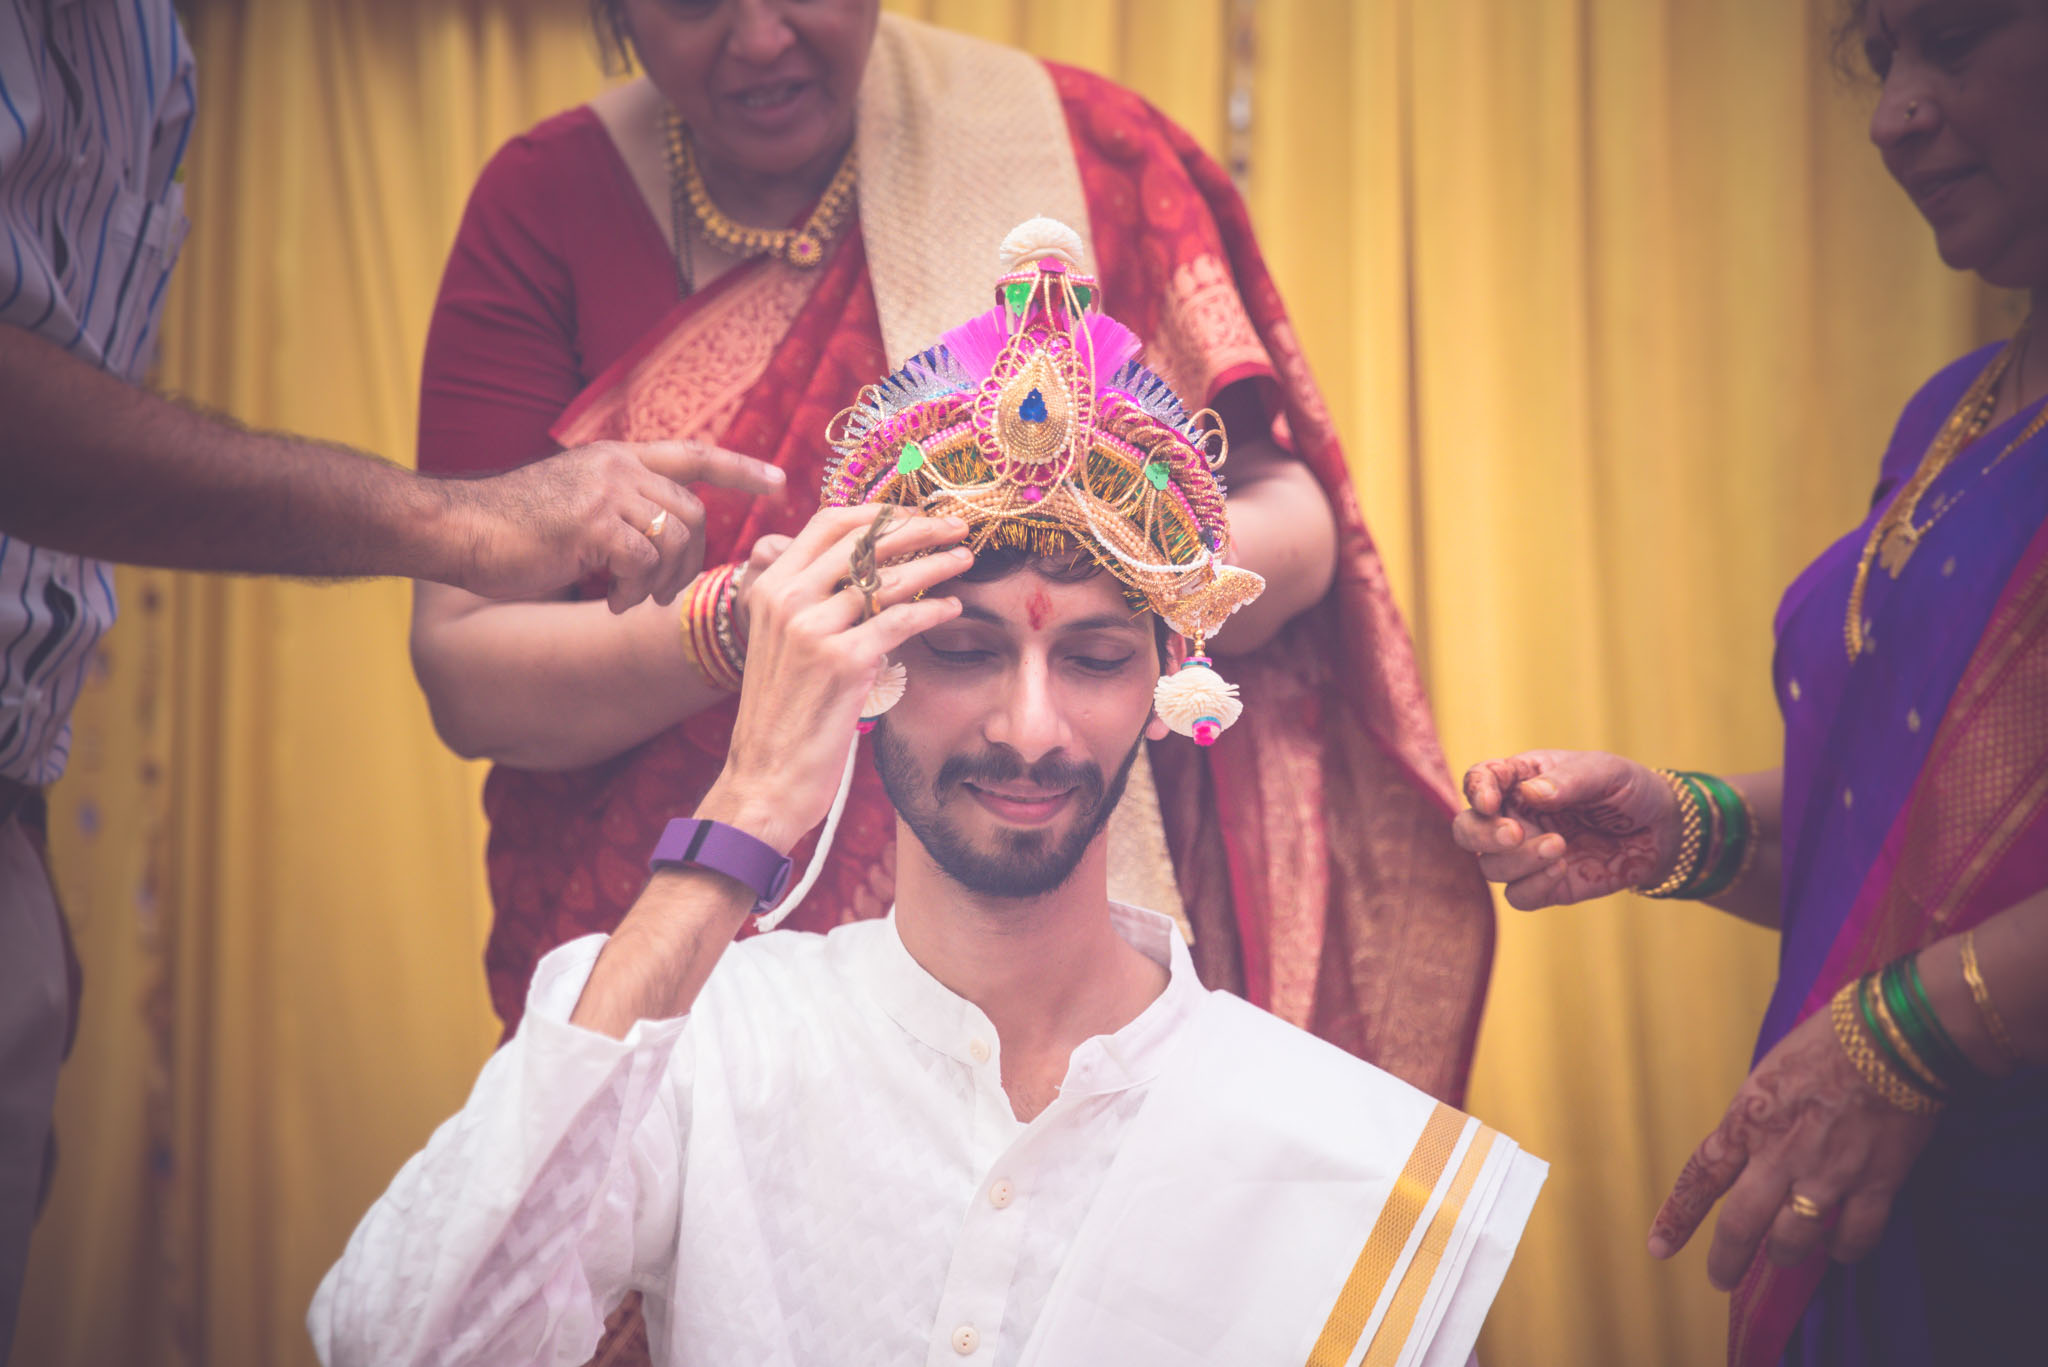 WhatKnot-Candid-Wedding-Photography-Mumbai-Bangalore-99